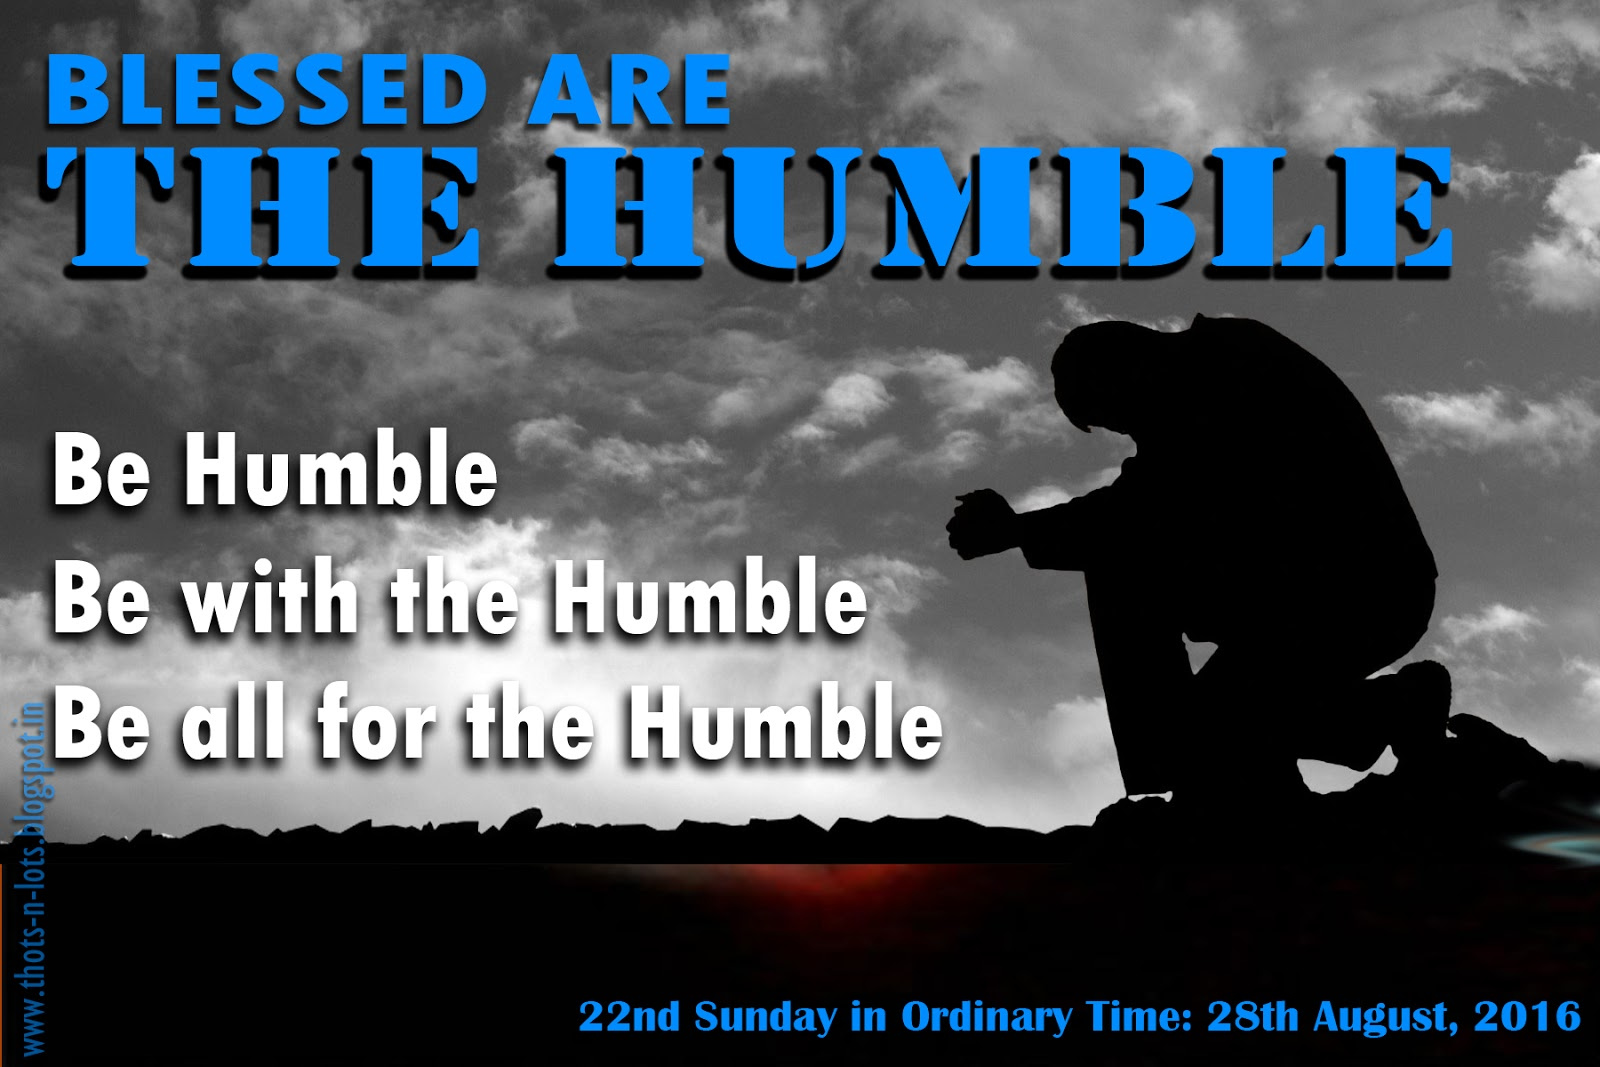 Humility - how to learn this virtue